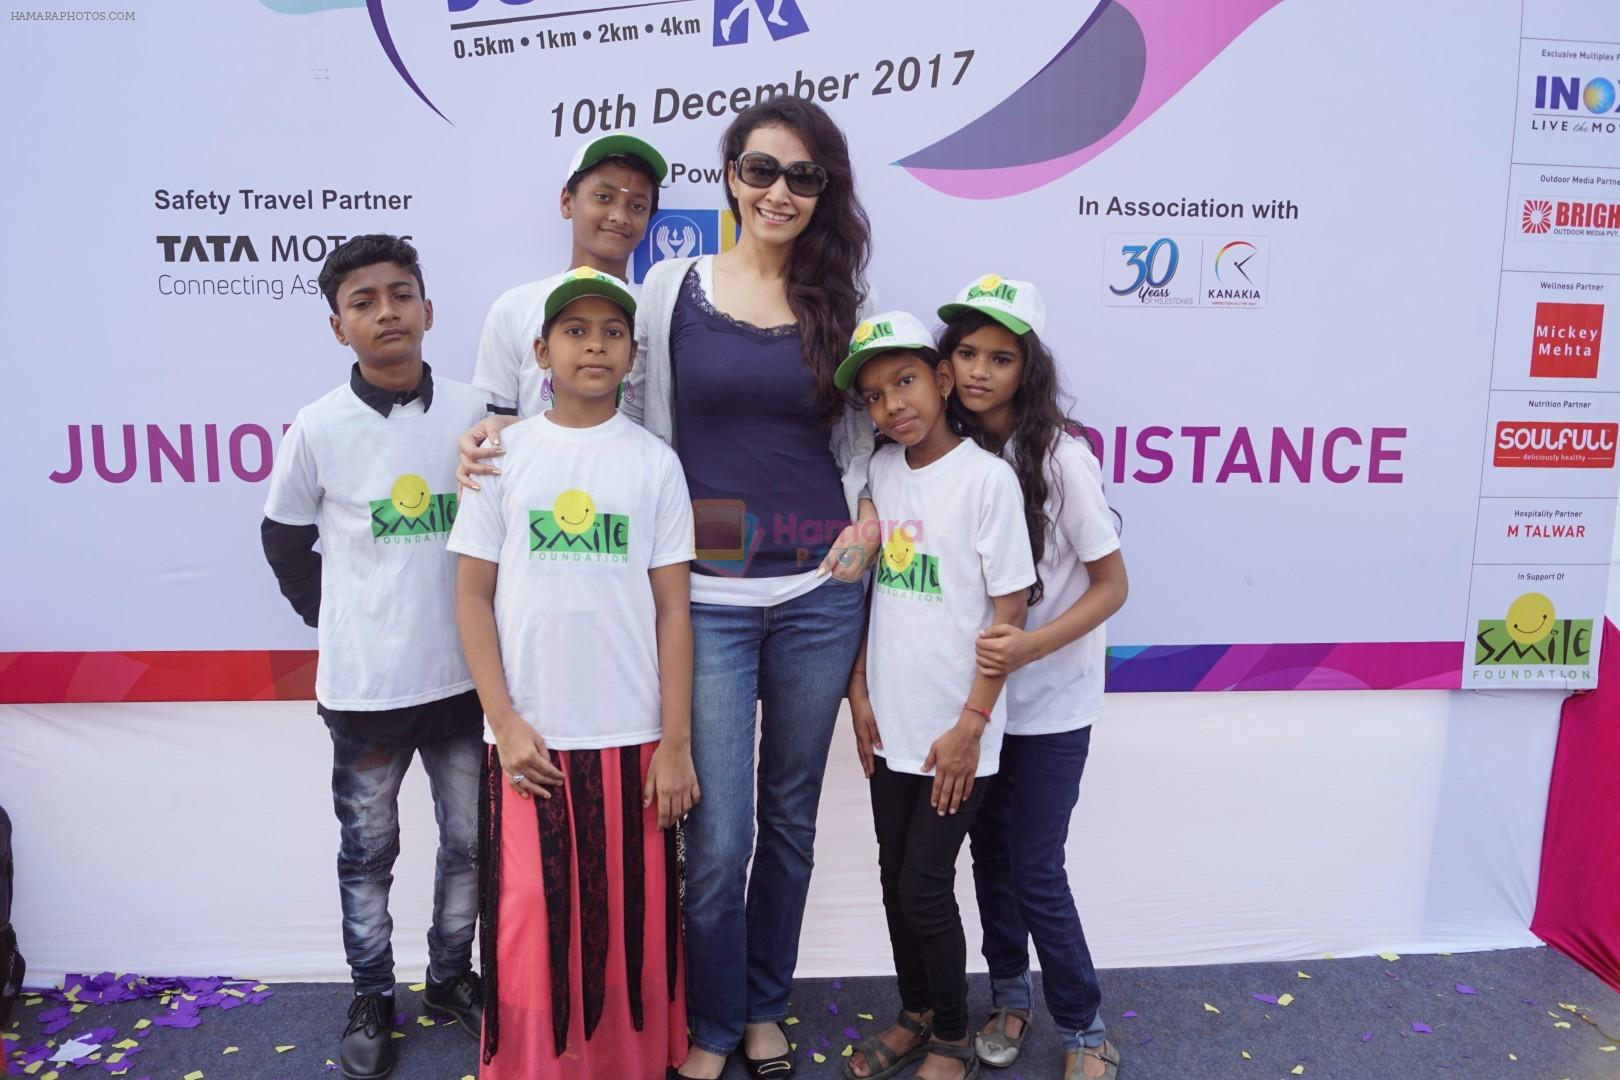 Dipannita Sharma at Mumbai Juniorthon An annual Running Event For Kids on 10th Dec 2017